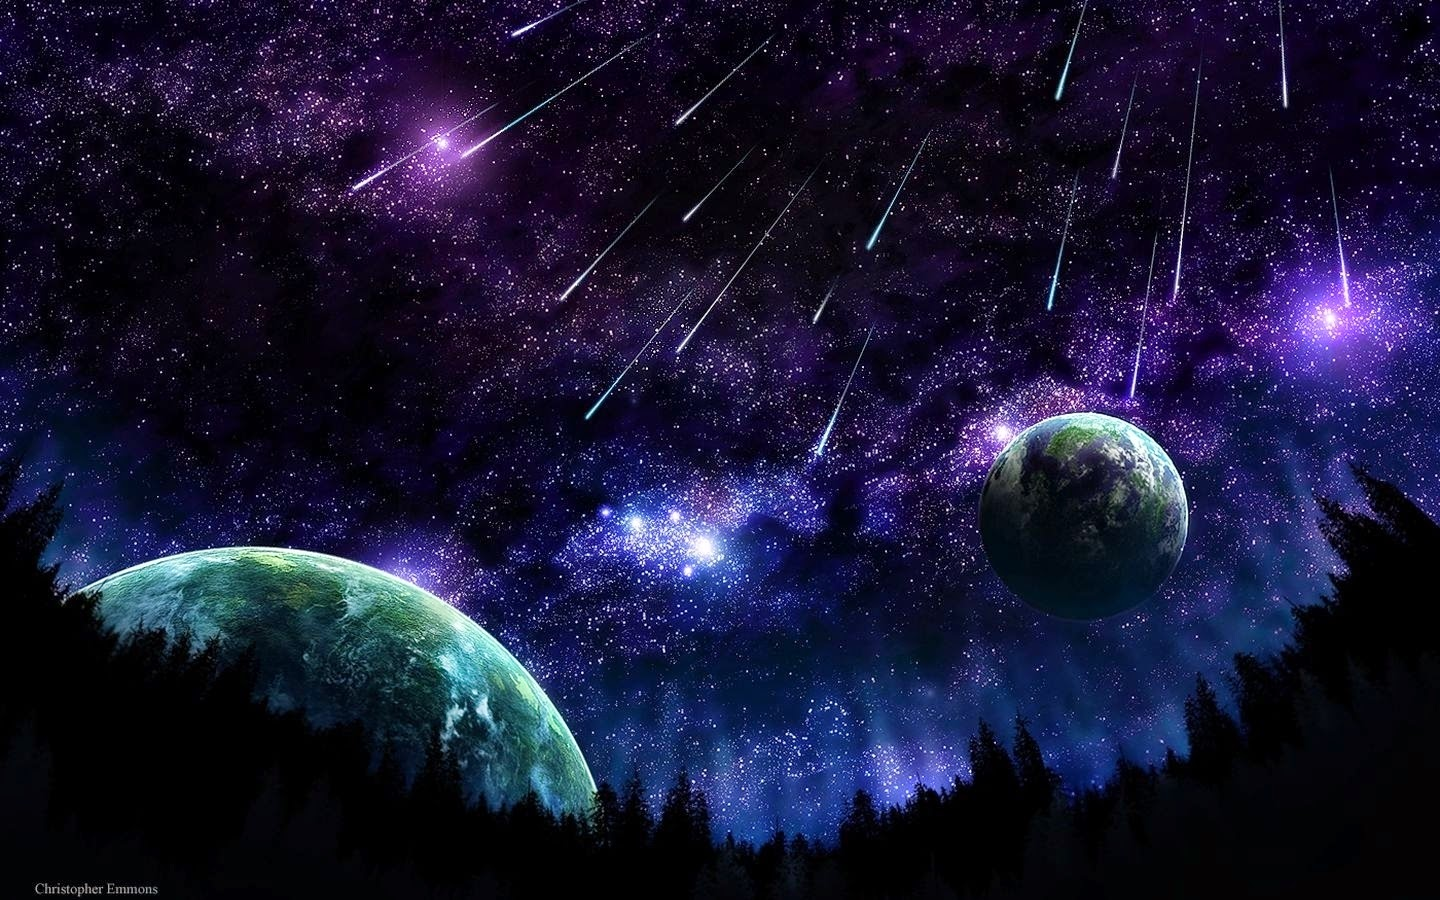 space wallpapers for desktop - photo #3